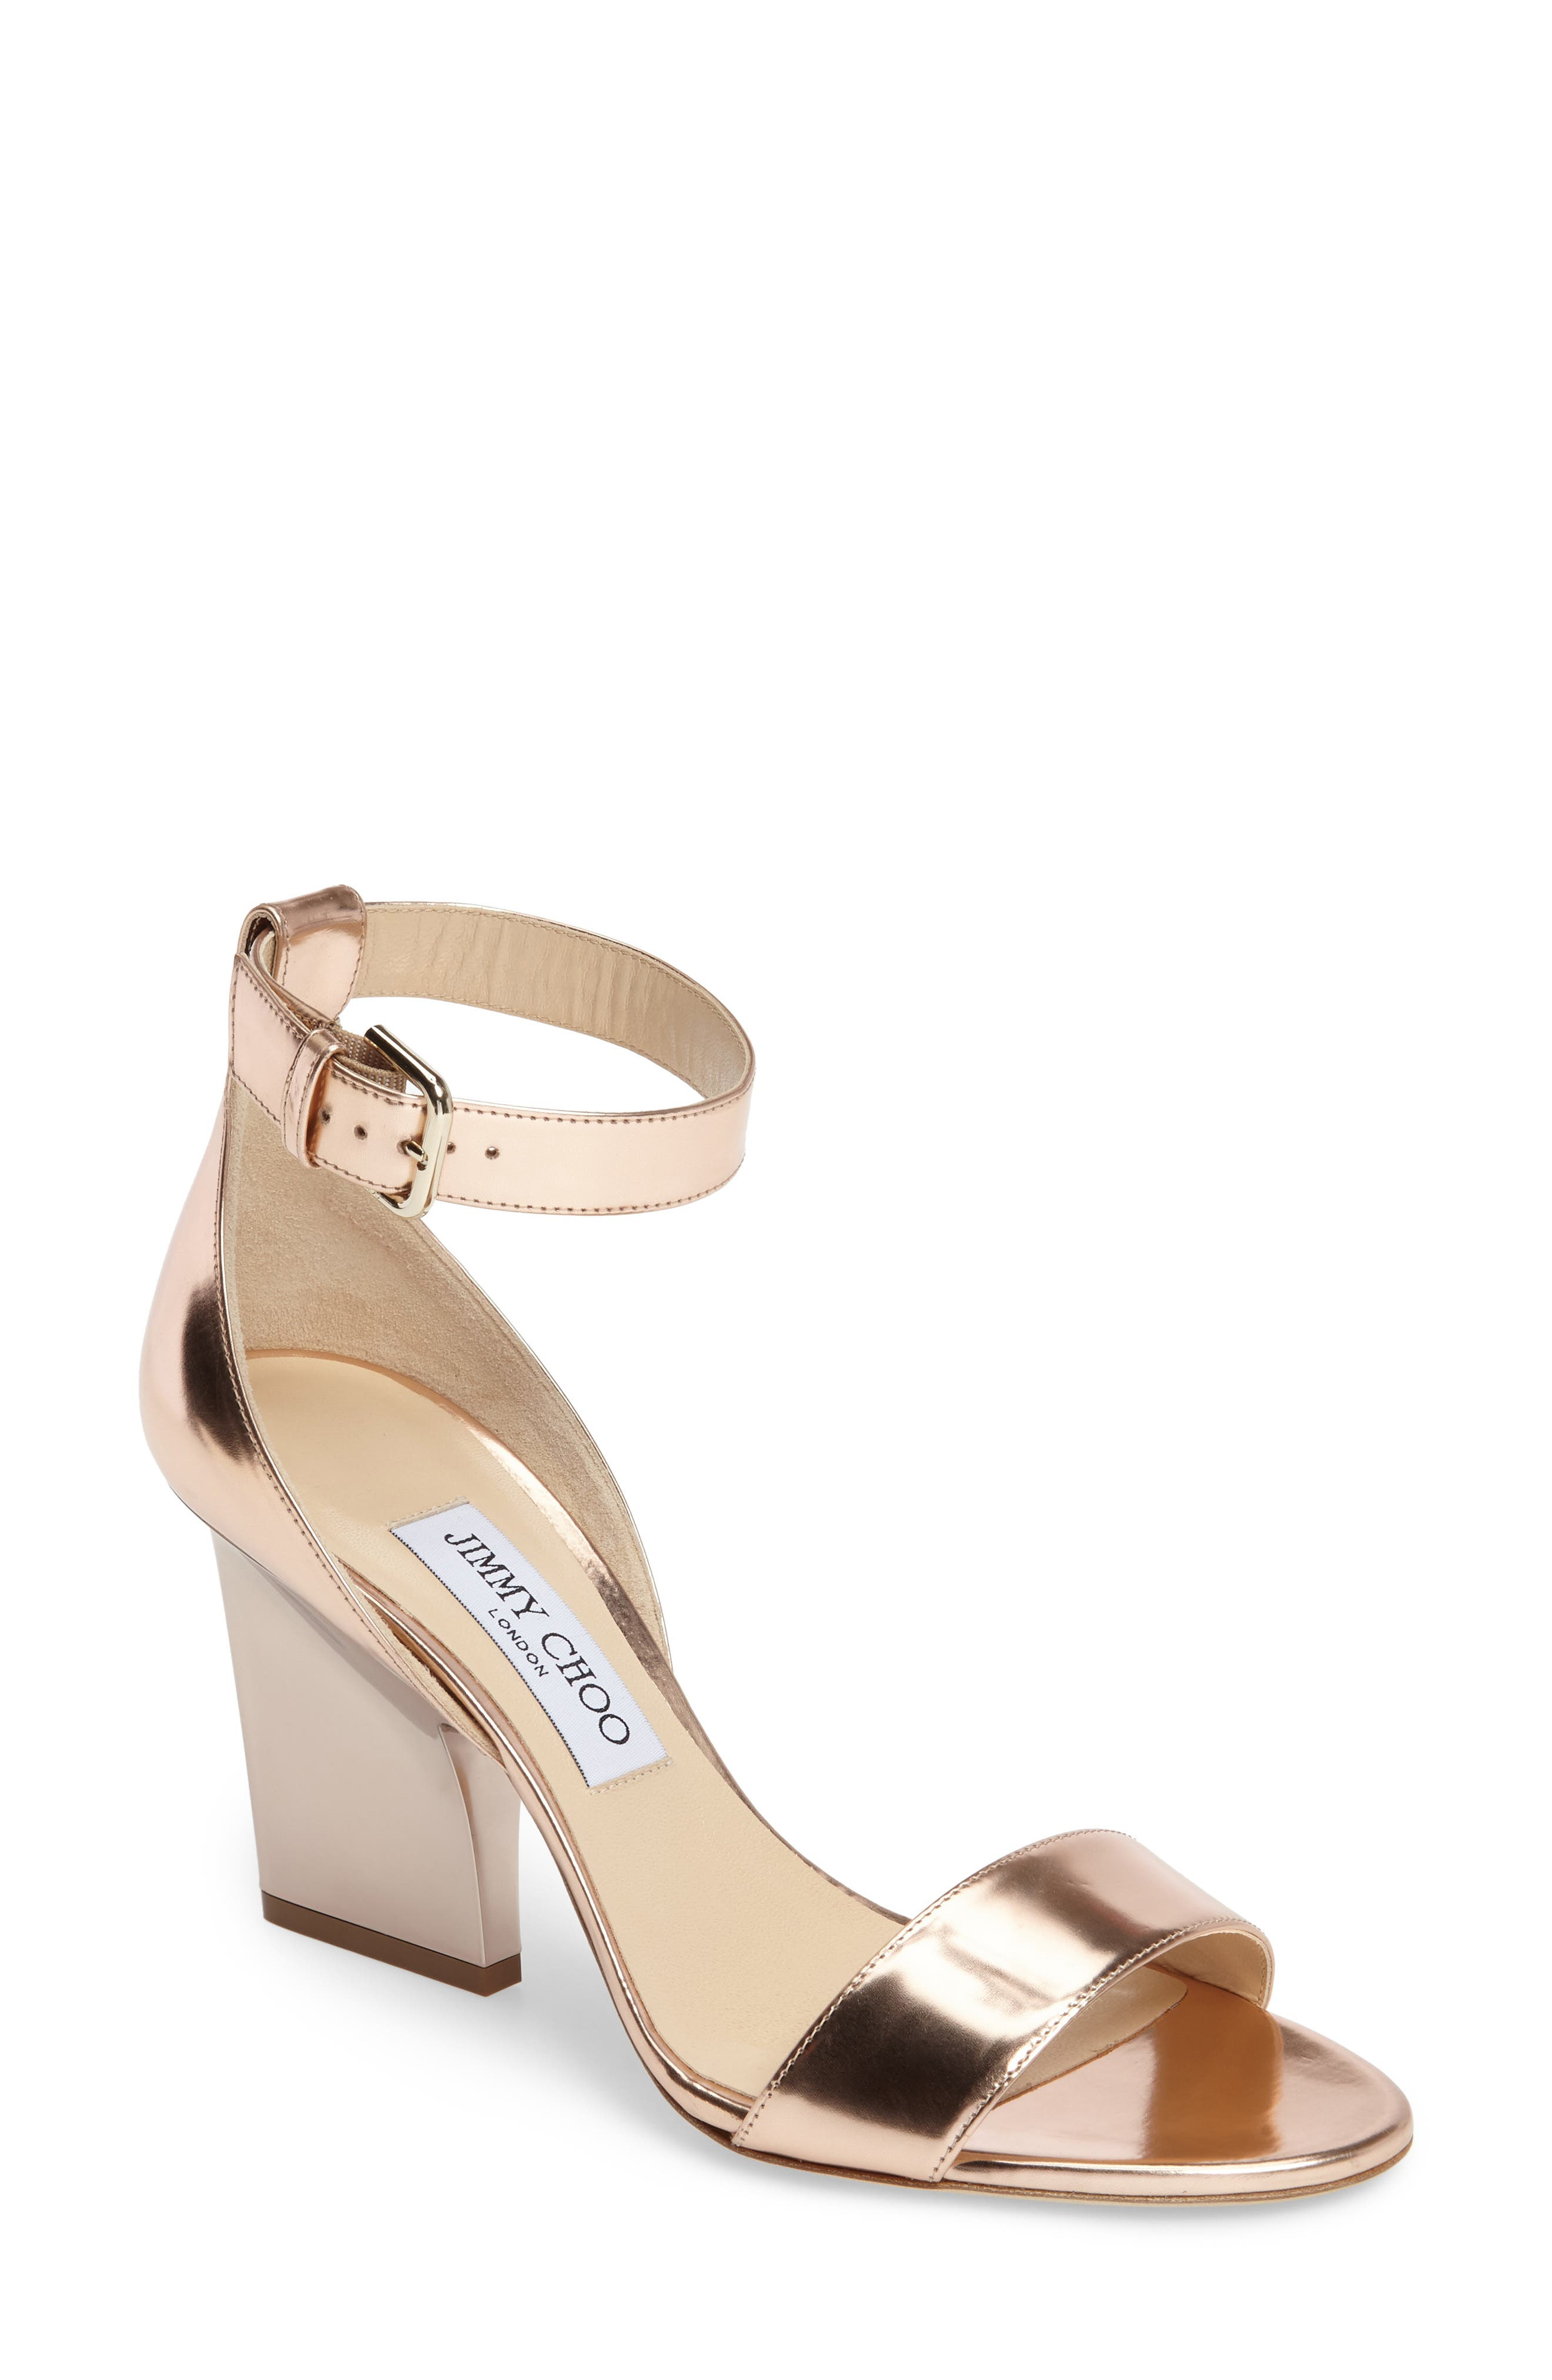 Alternate Image 1 Selected - Jimmy Choo Edina Ankle Strap Sandal (Women)